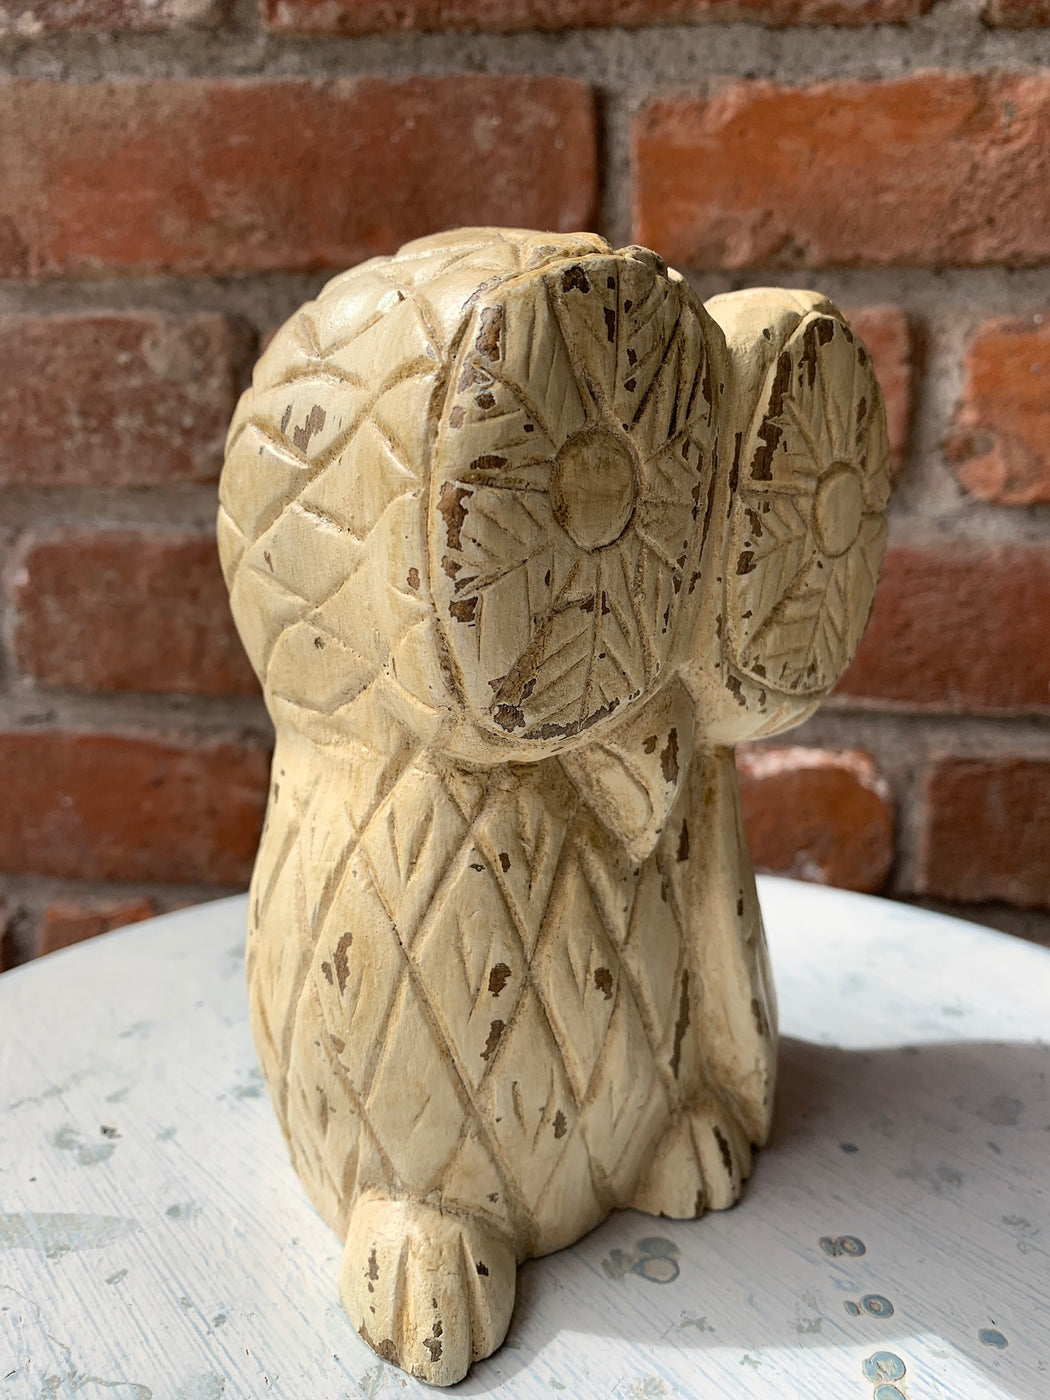 Distressed, cream colored owl statue.